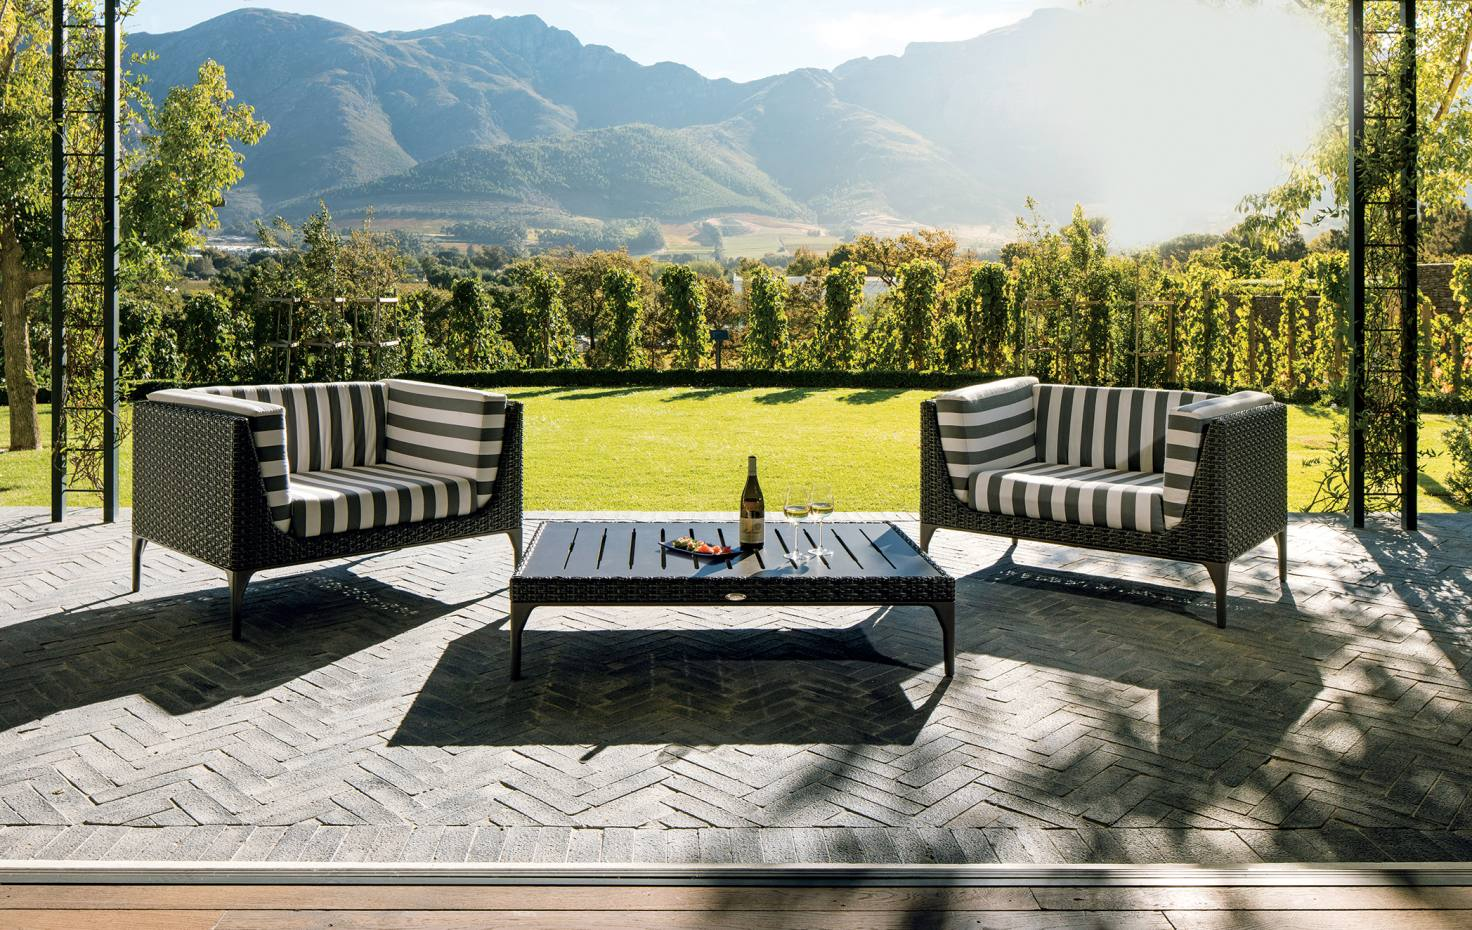 One of the luxury vineyard lodges with private garden at Leeu Estates in Franschhoek, South Africa